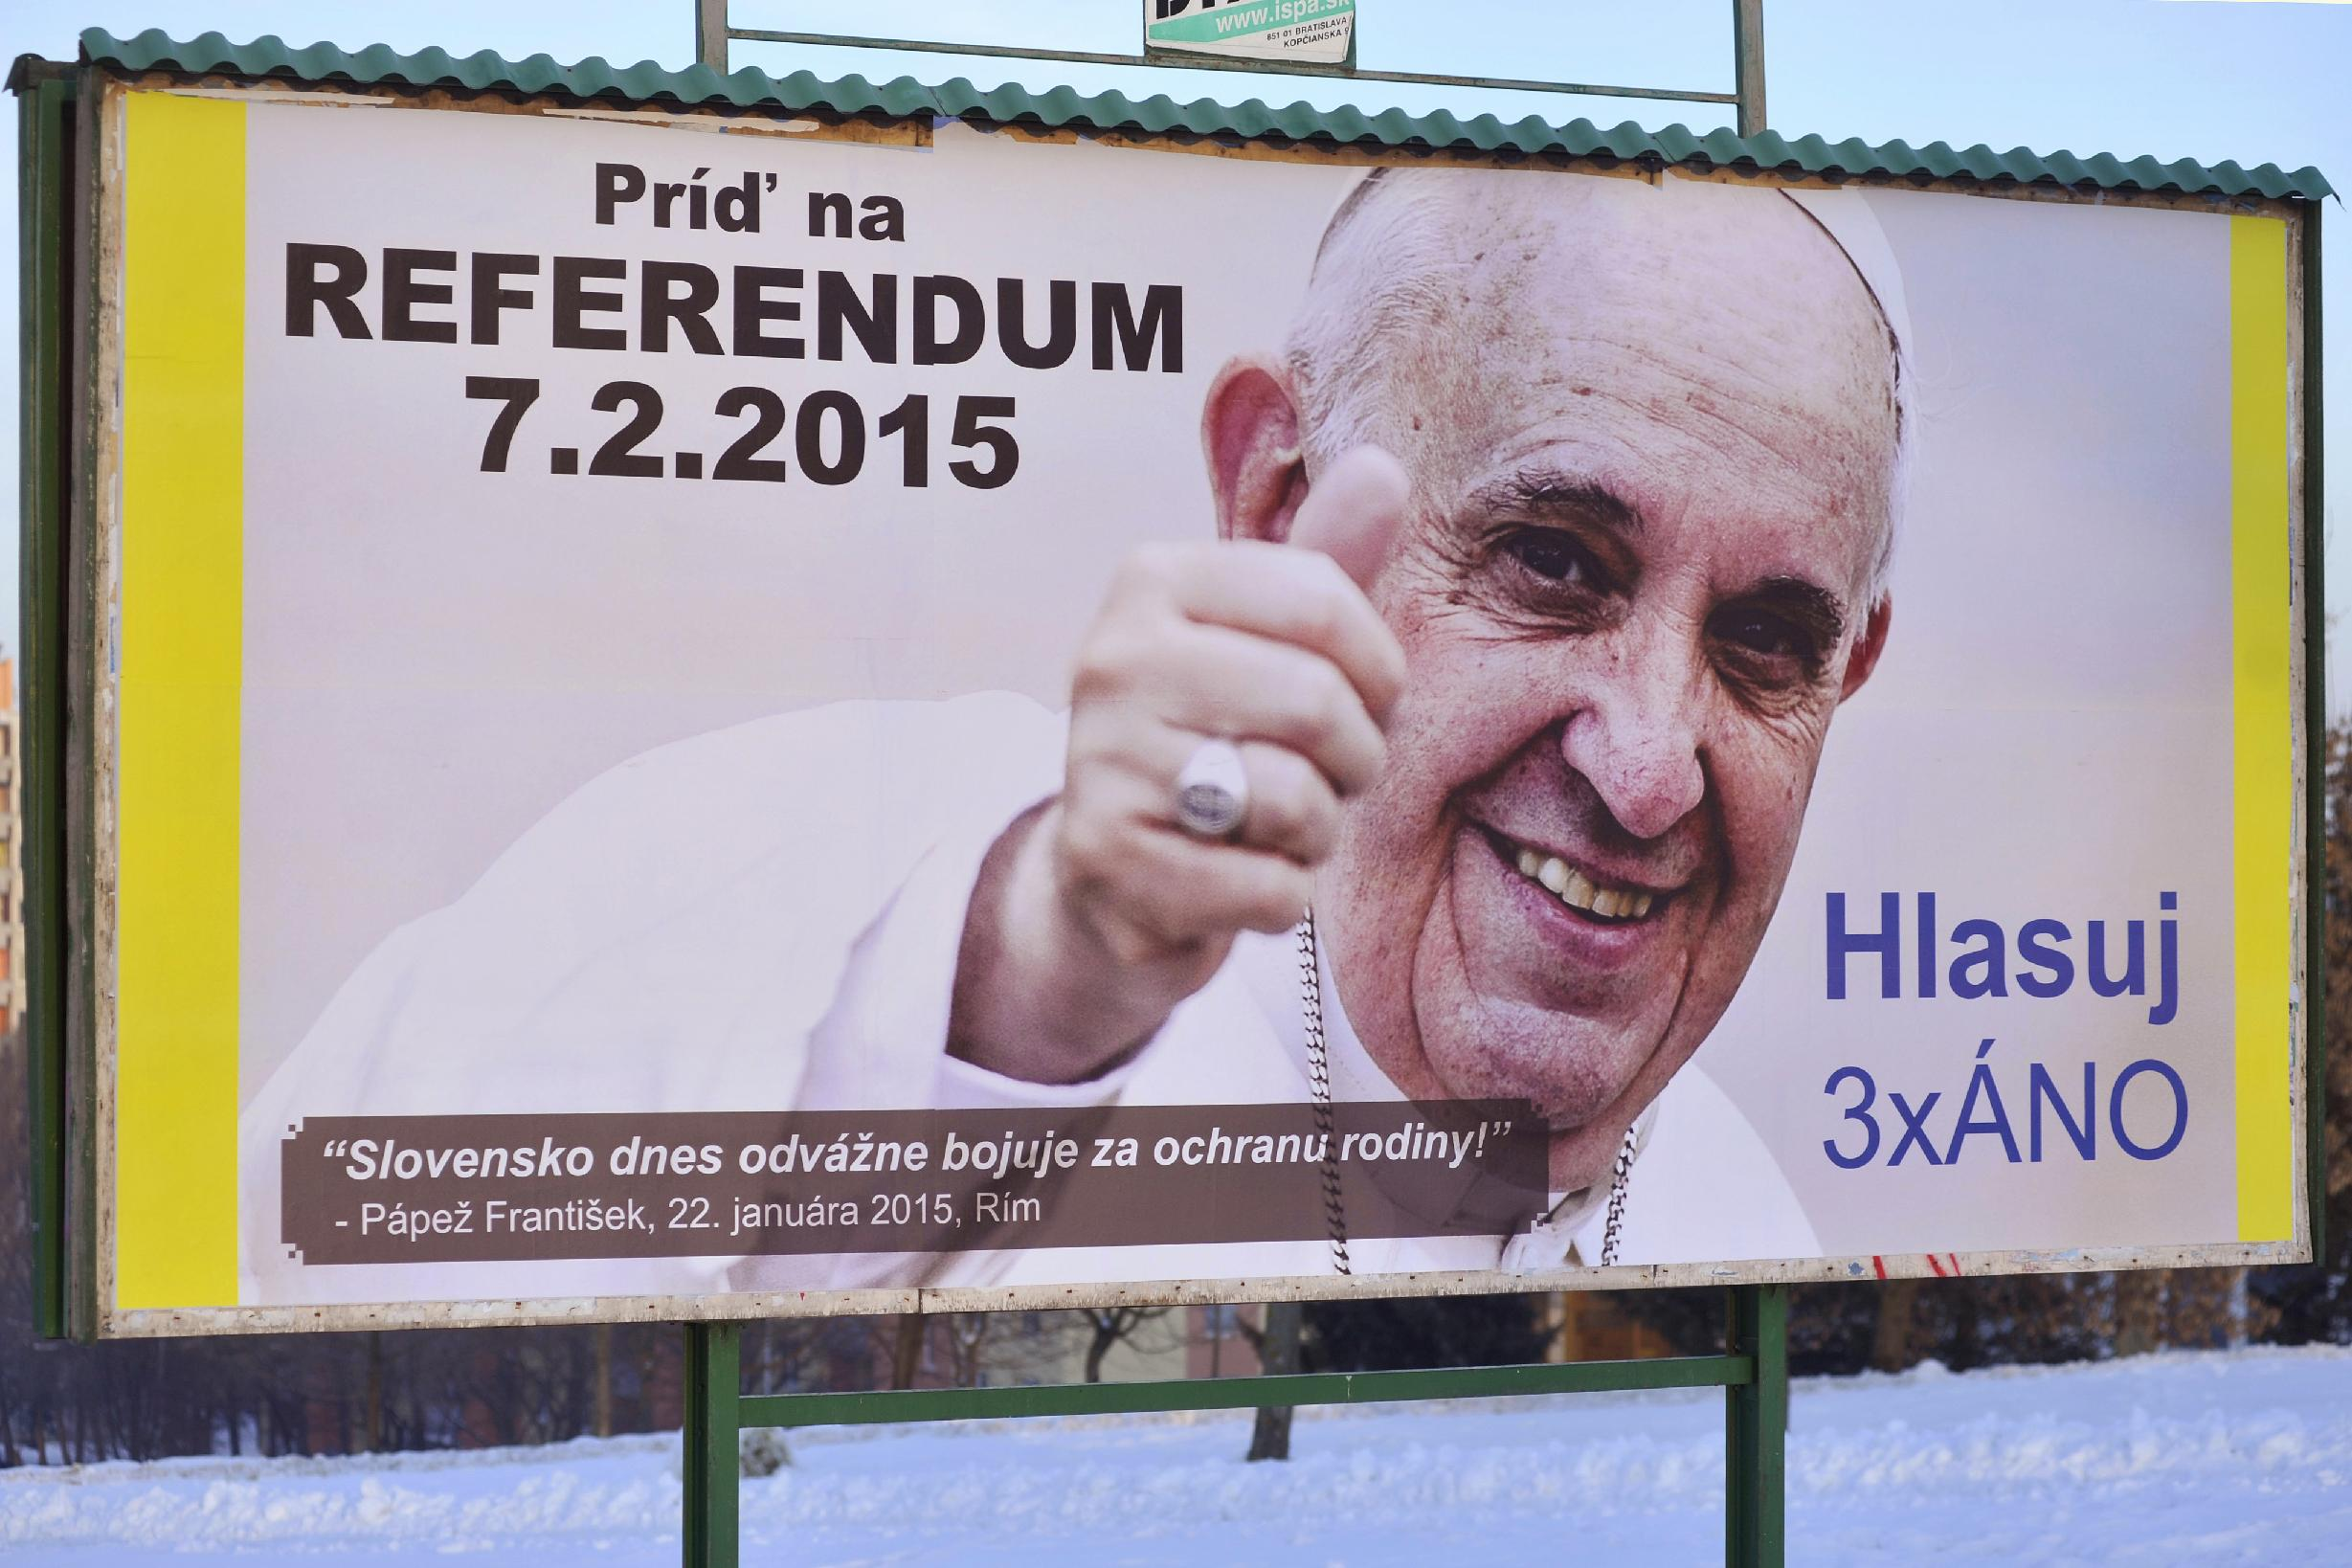 Pope's Influence Fails To Move Slovaks To Oppose Marriage & Adoption  Equality